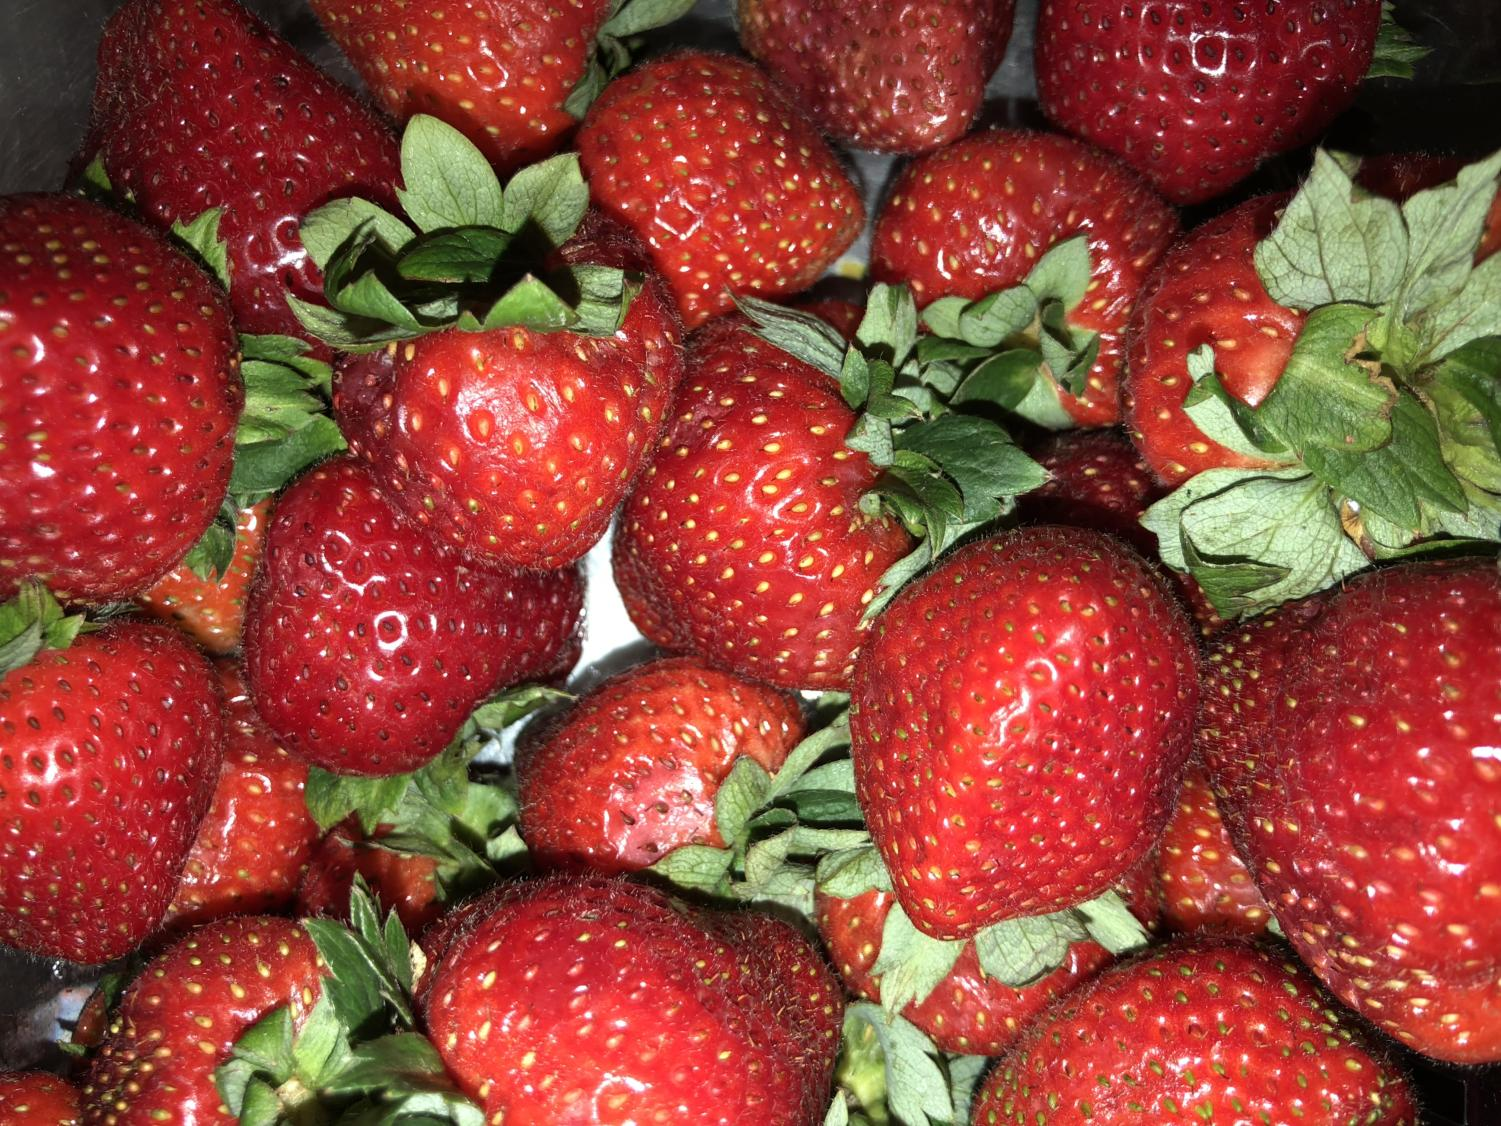 Snacks like strawberries are not only healthy but are also sweet.